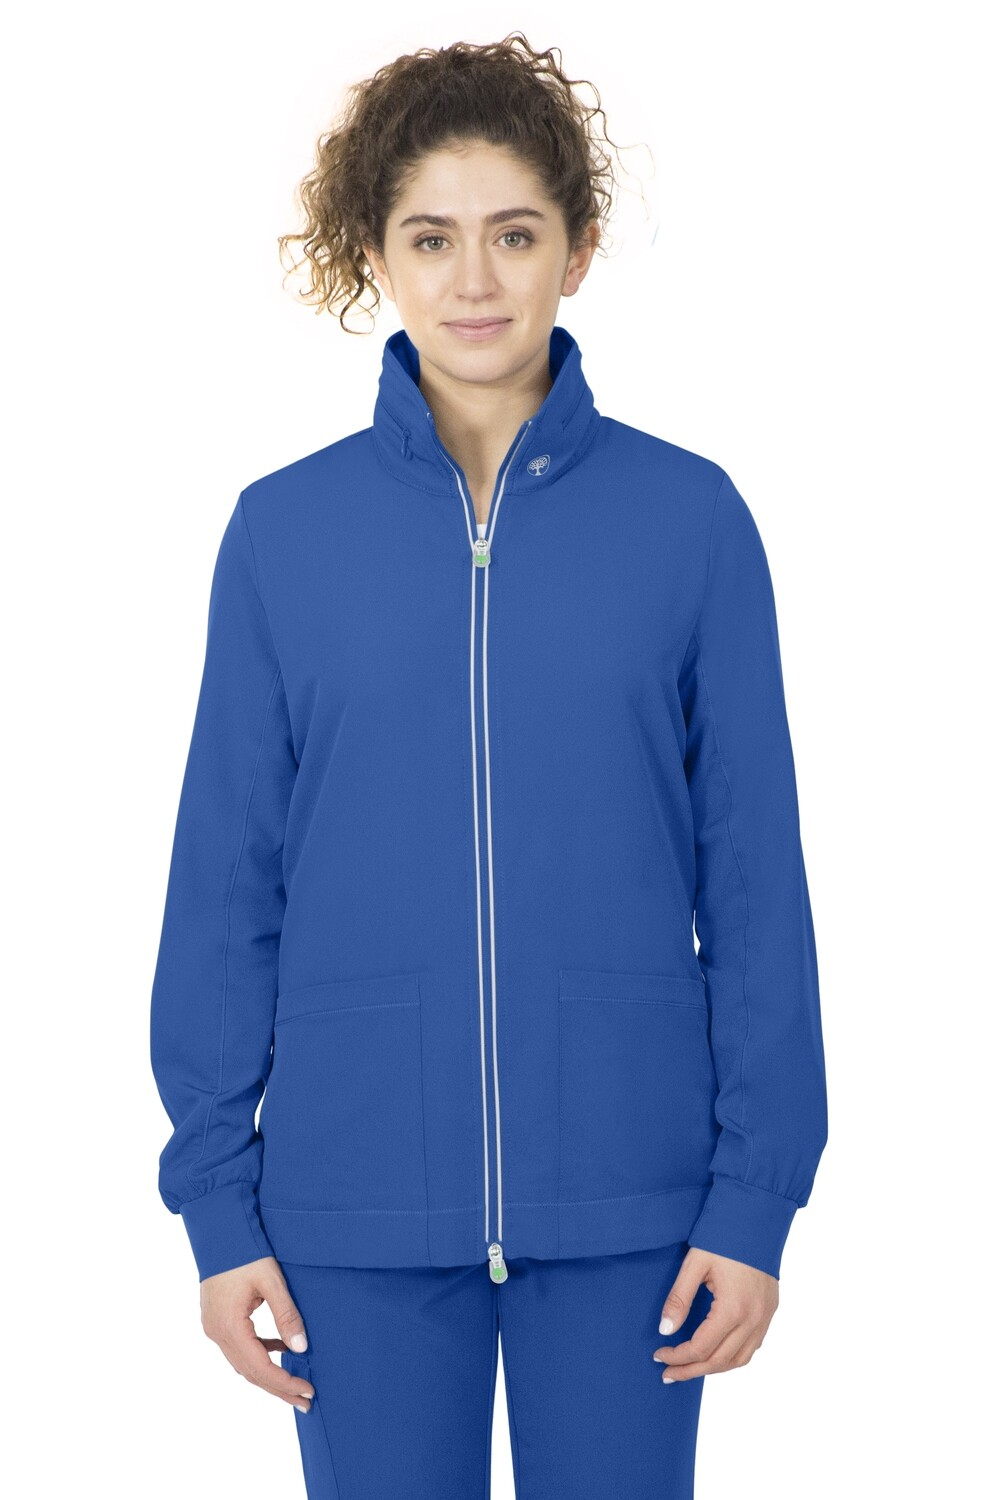 5065 CARRIE JACKET - PL 2XL ROYAL